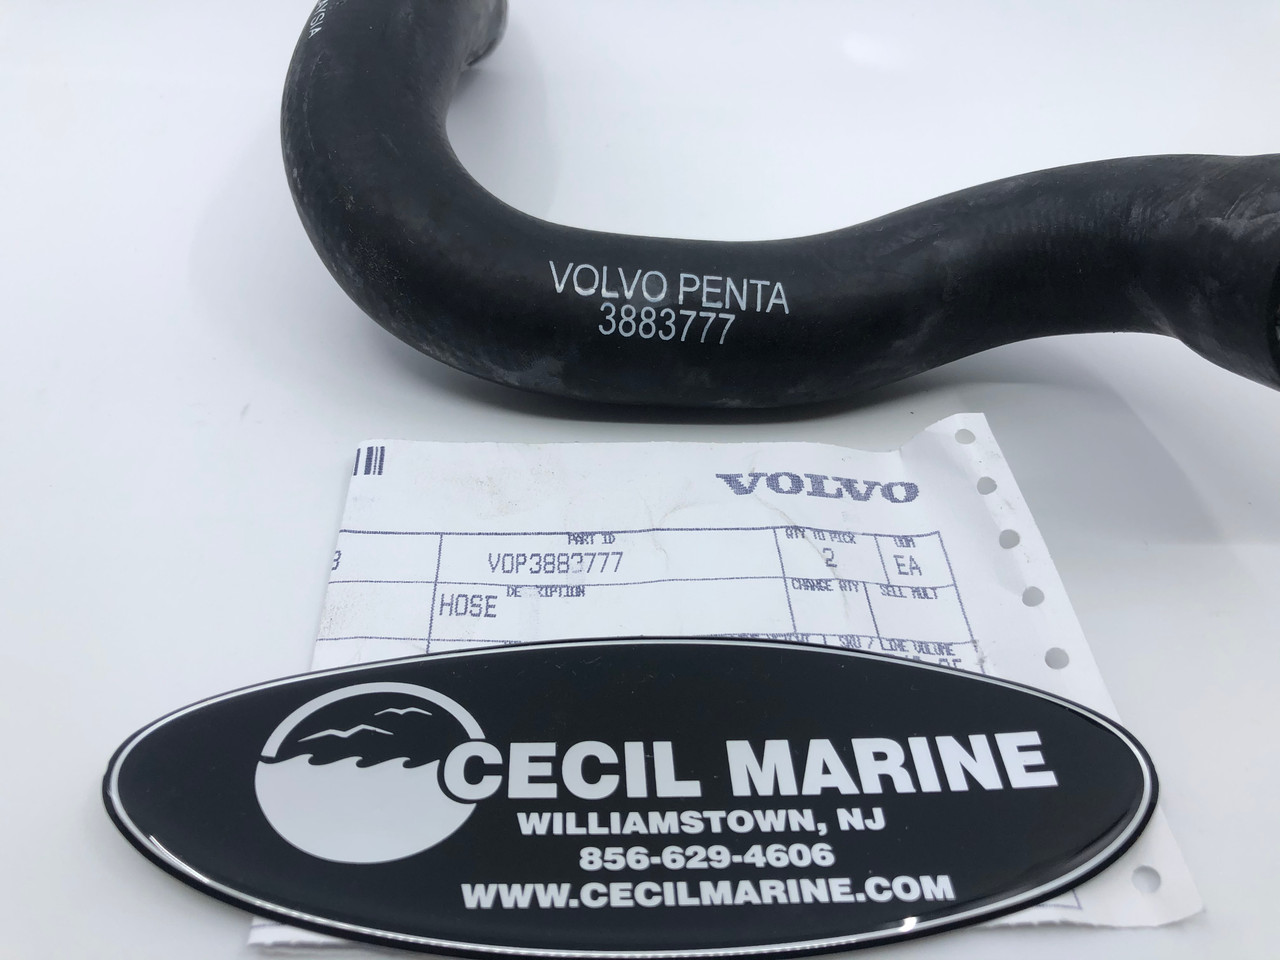 $29.95* GENUINE VOLVO PORT WATER HOSE * In Stock & Ready To Ship!